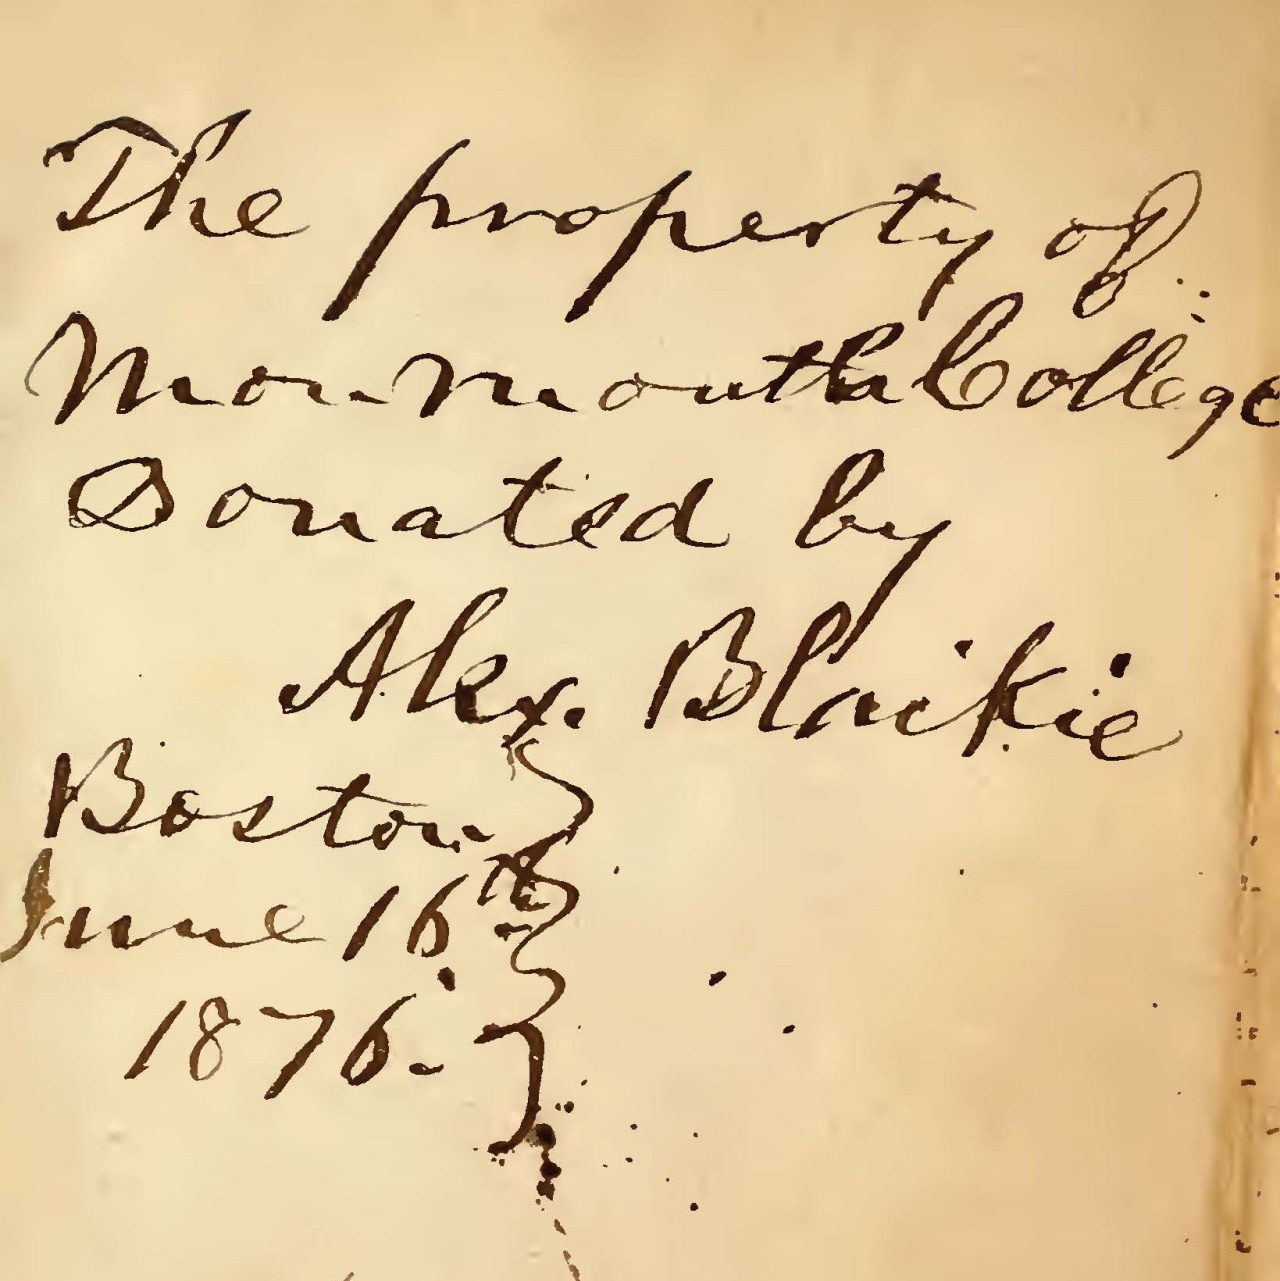 This diary covers the period between April 22 and August 31, 1835.